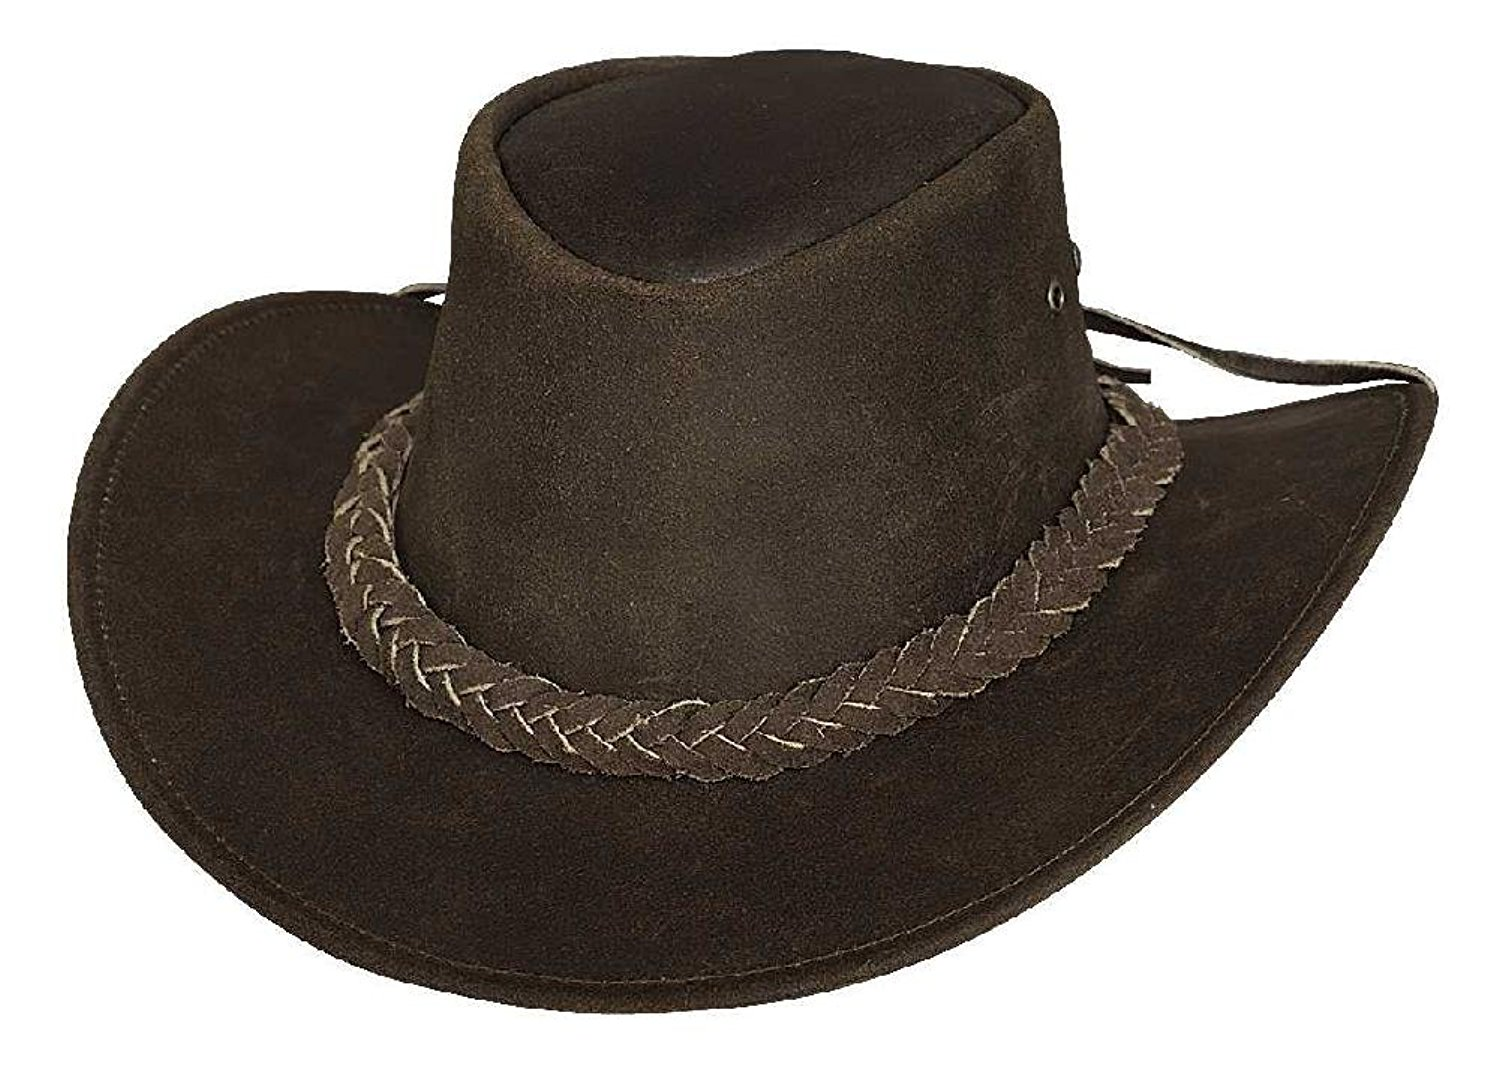 9d995e3f9f35e Get Quotations · Montecarlo Bullhide Hats CEDAR GROOVE JR Childs Leather Western  Cowboy Hat